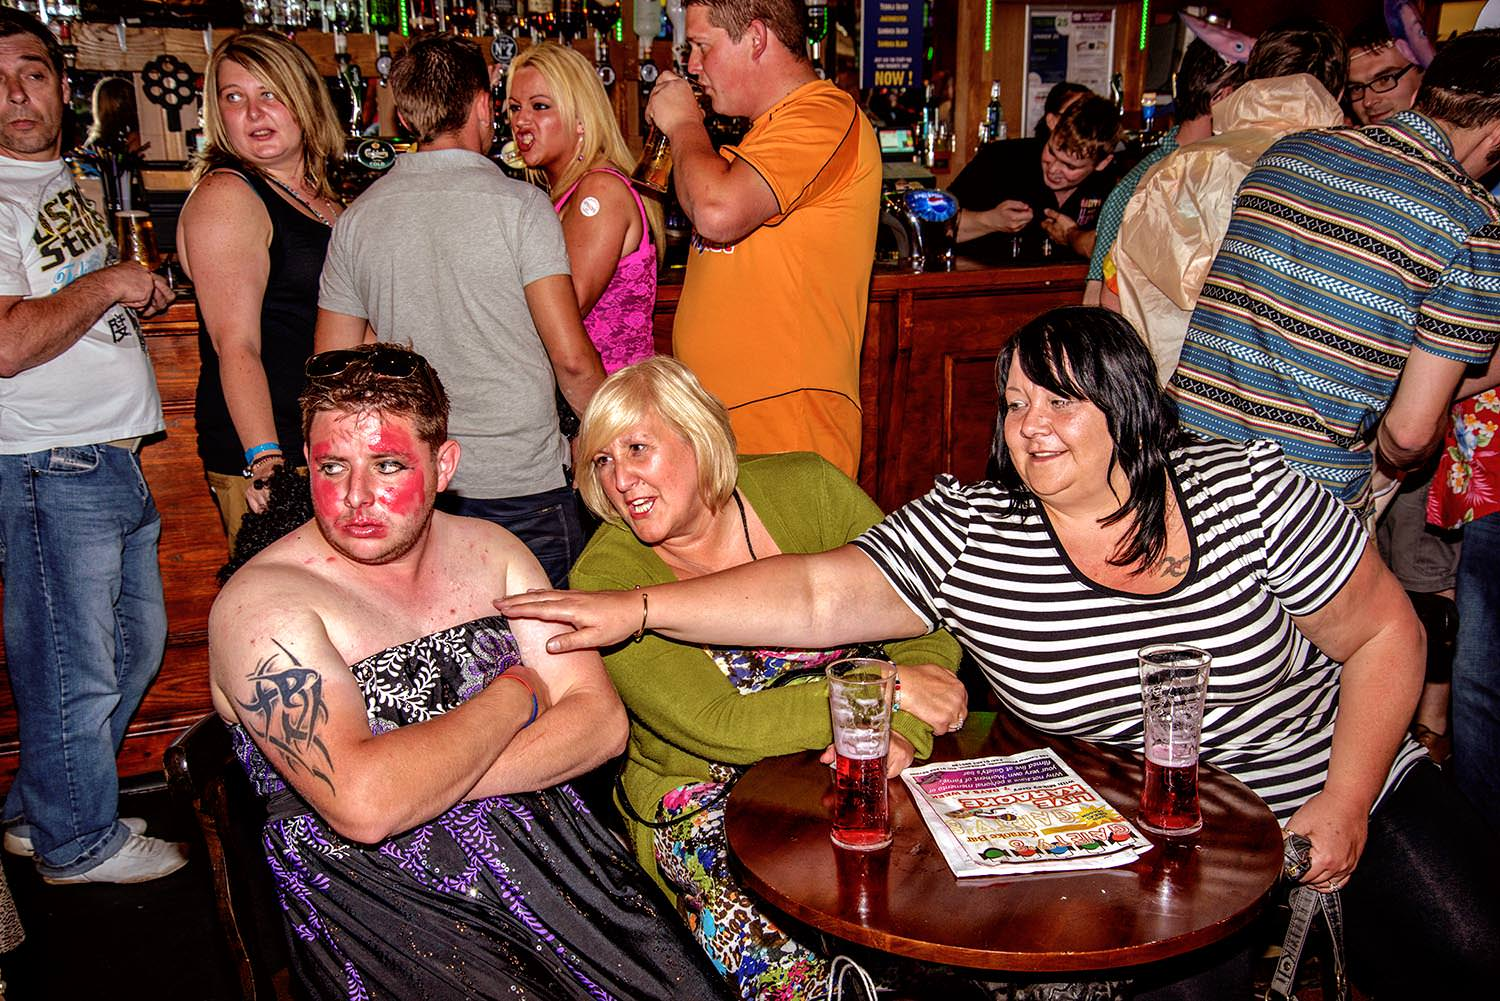 20120903-Blackpool_2012-cross dress book.jpg